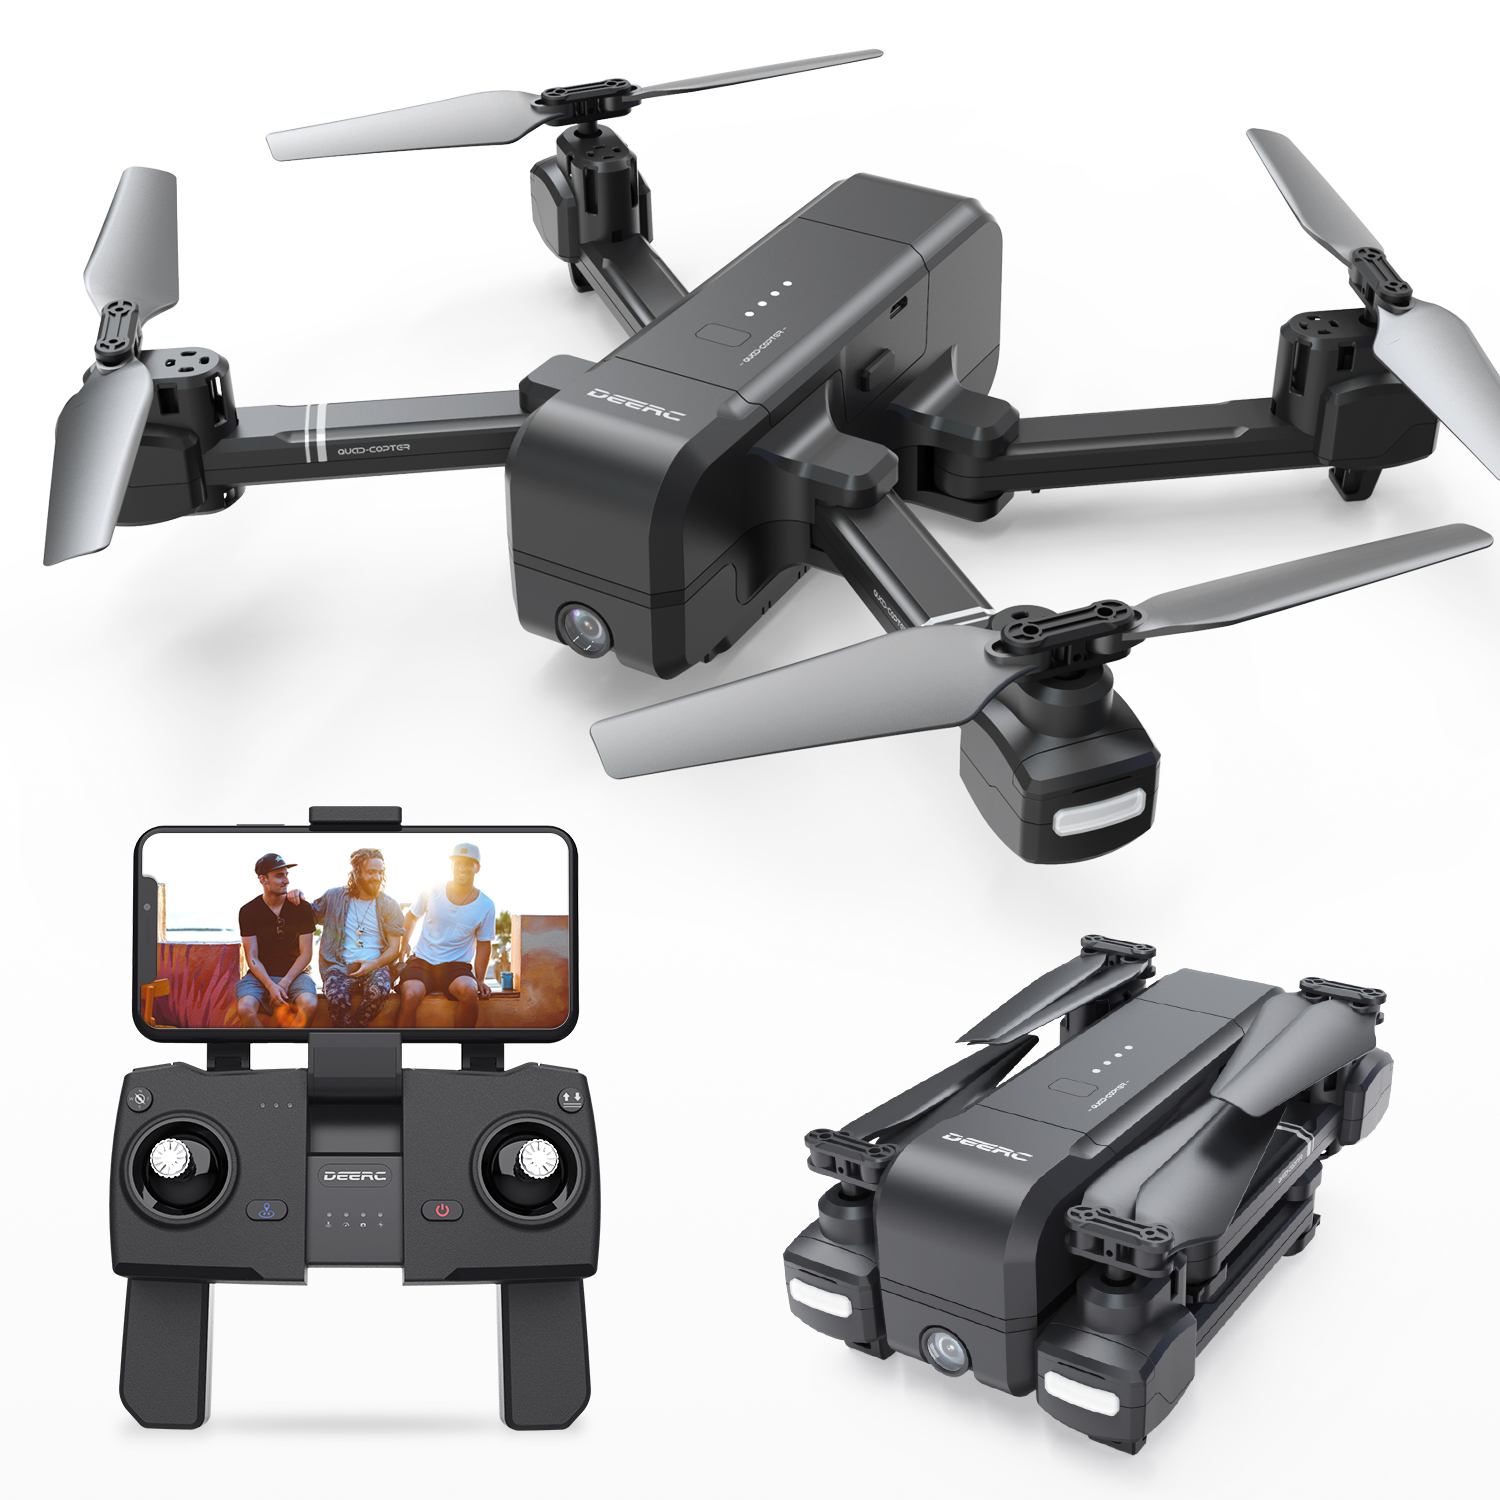 DEERC DE25 1080P FPV Wifi GPS Drone with Camera HD Foldable Portable Tapfly Active Track 18m